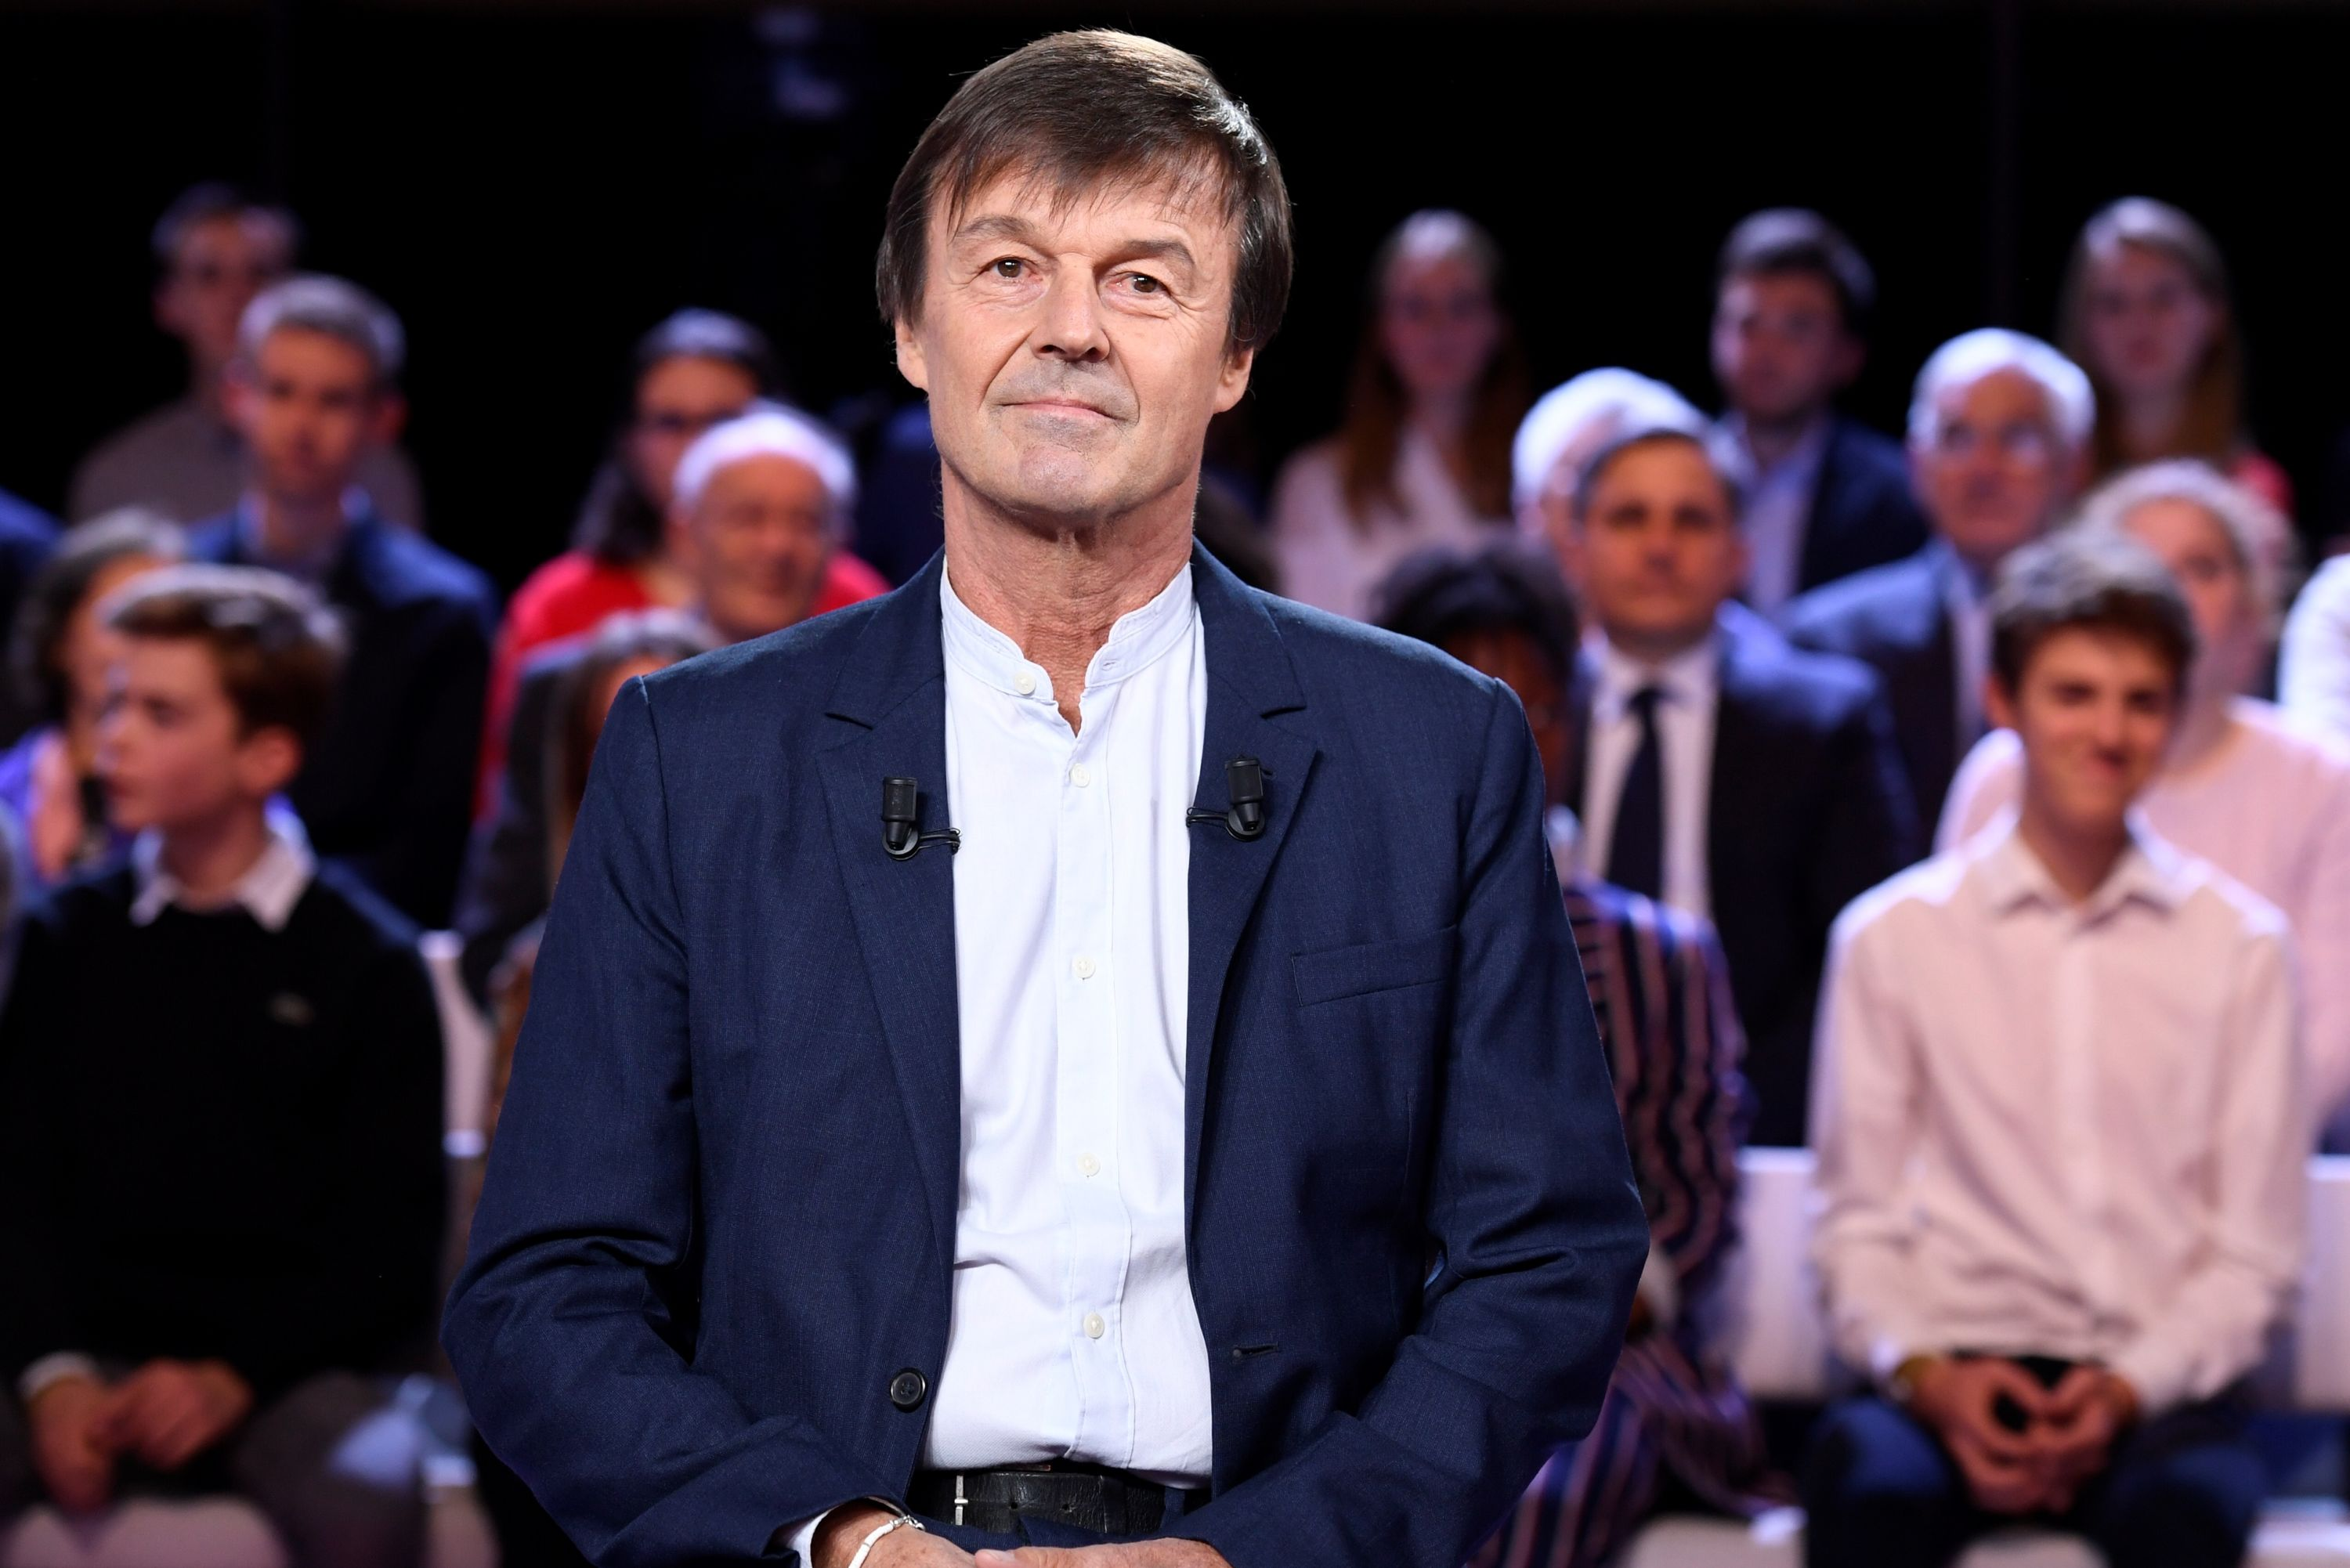 Nicolas Hulot Emission politique France 2